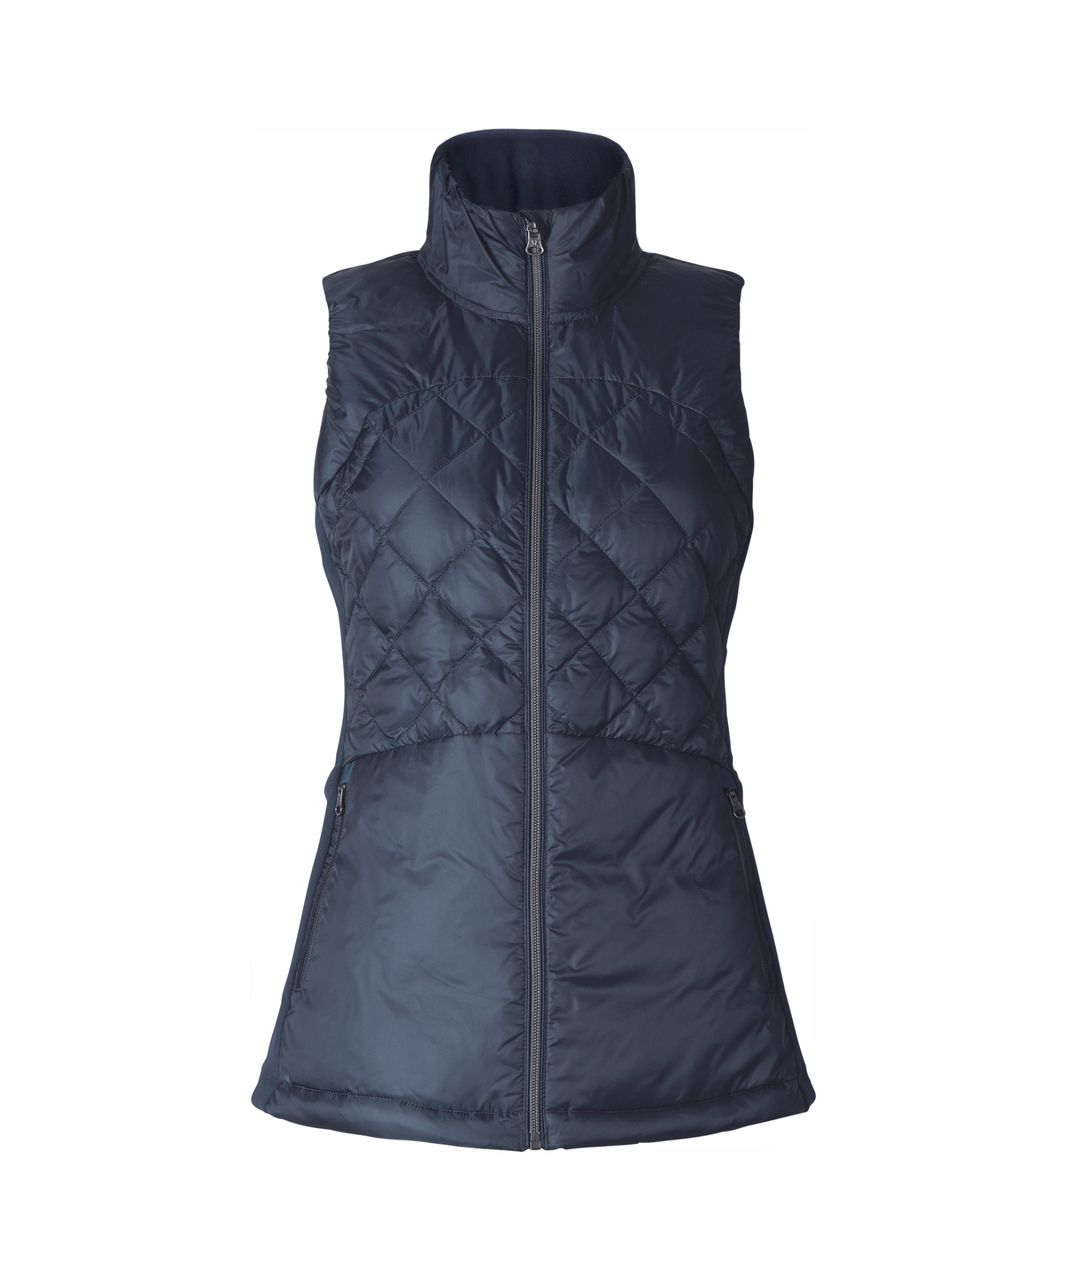 Lululemon Down For A Run Vest - Inkwell